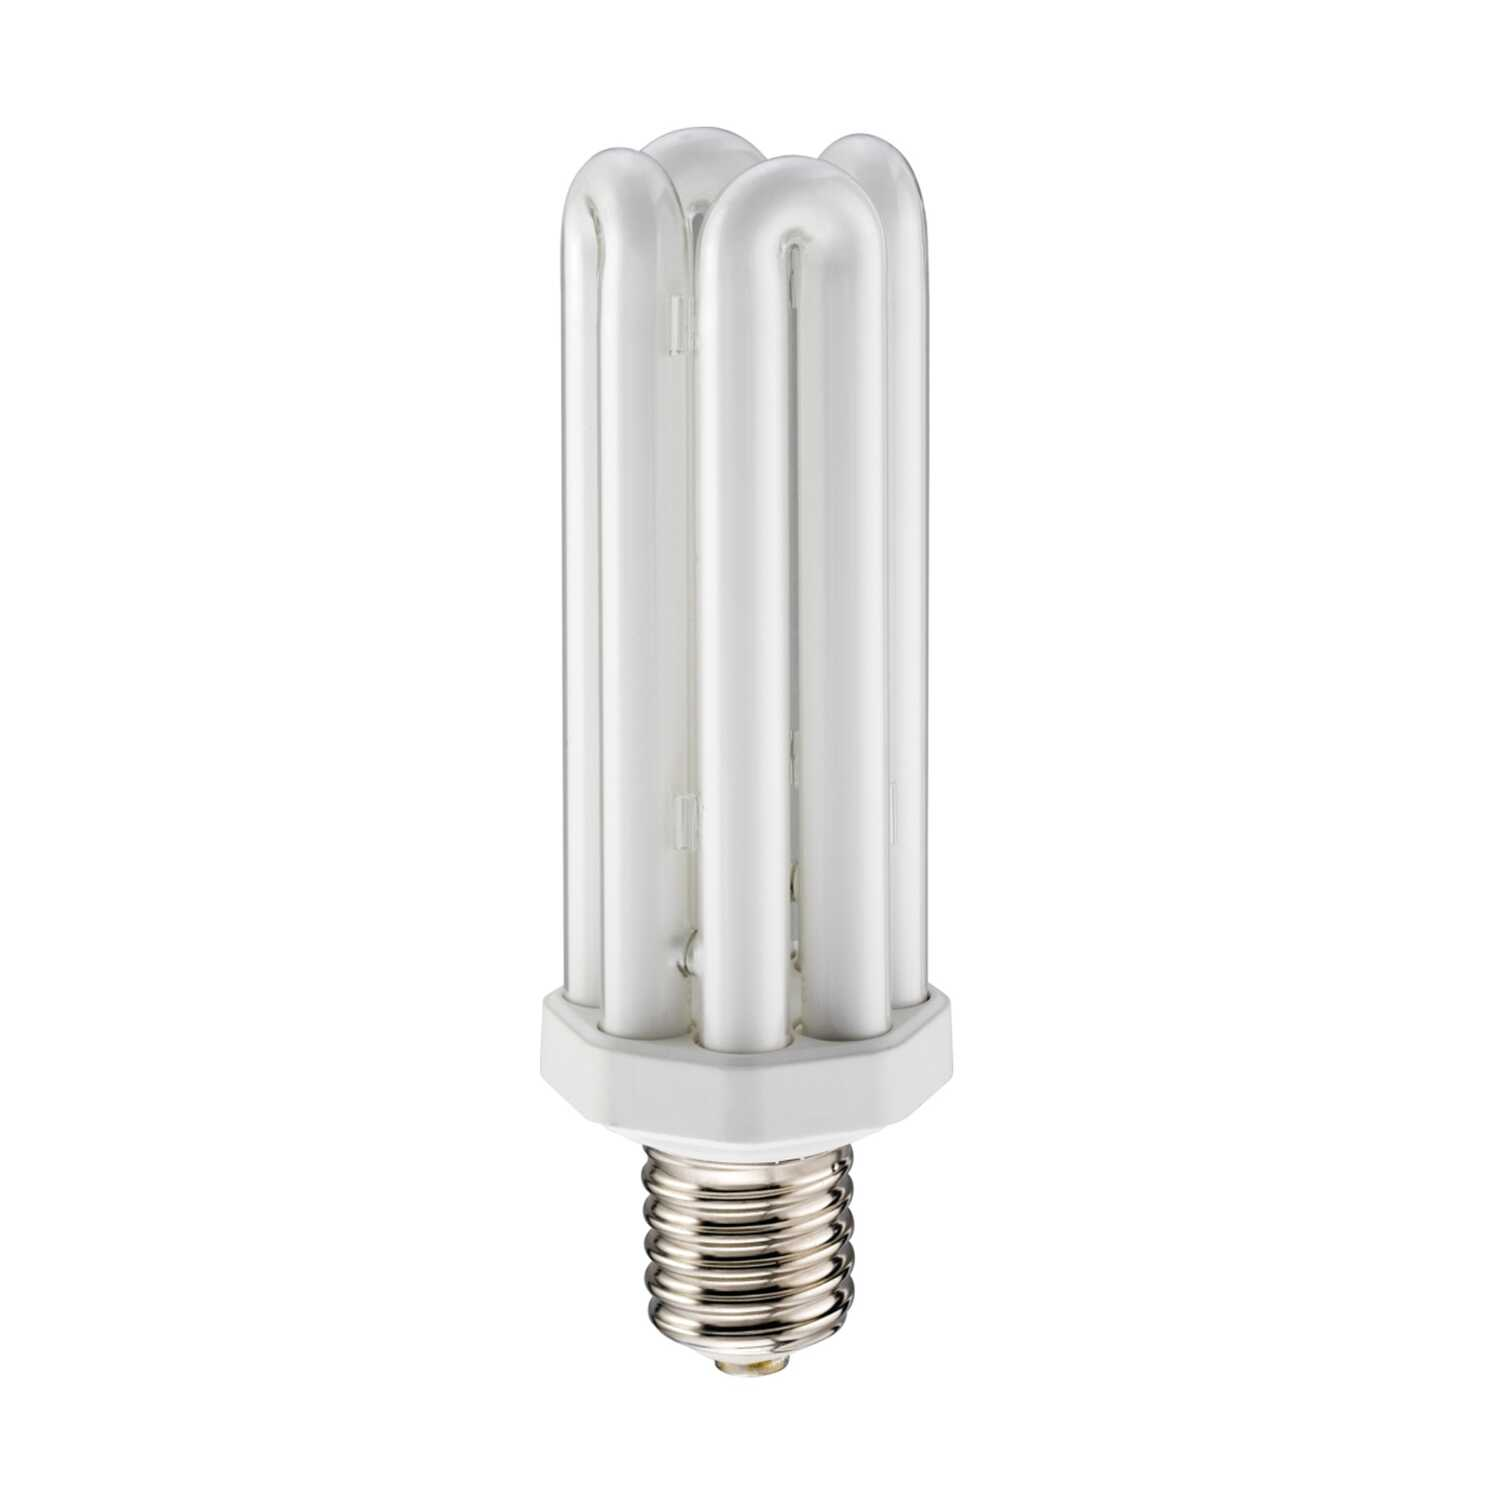 Lithonia Lighting  65 watts Linear  6 in. Cool White  CFL Bulb  Specialty  1 pk 3900 lumens